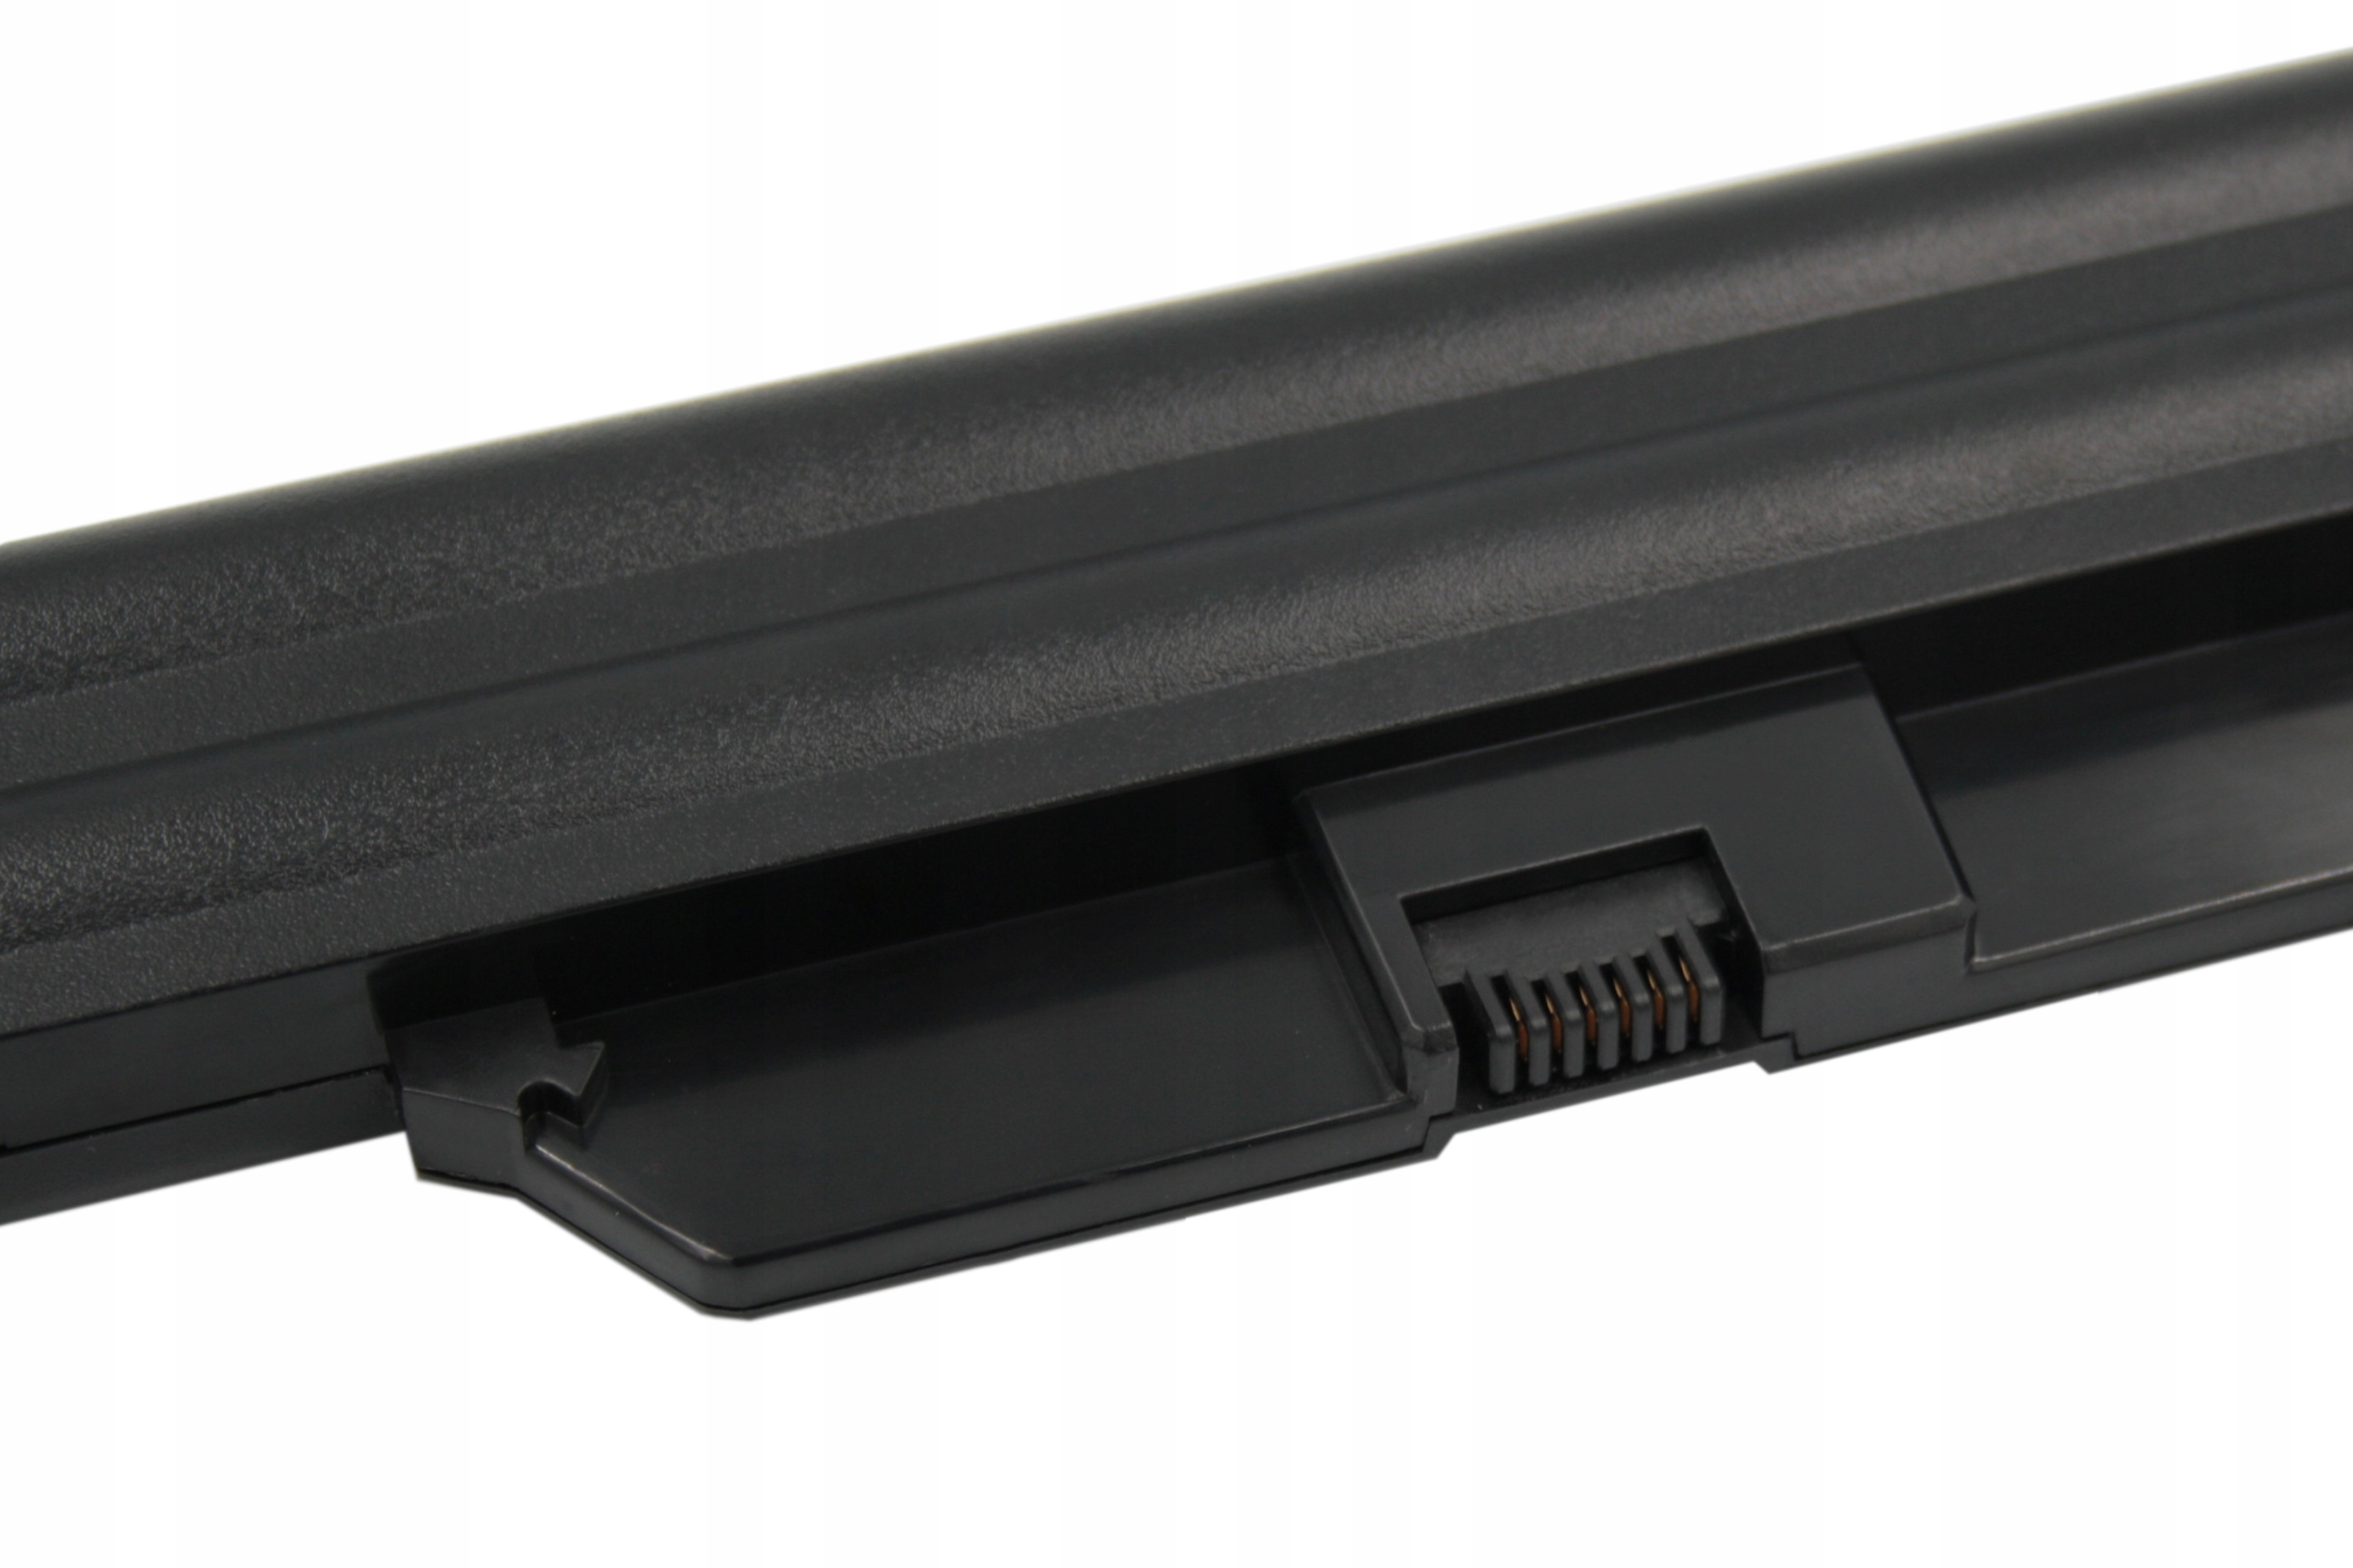 BATERIA AKUMULATOR HP COMPAQ 550 610 615 6720s 6735s 6820s - Baterie do laptopów